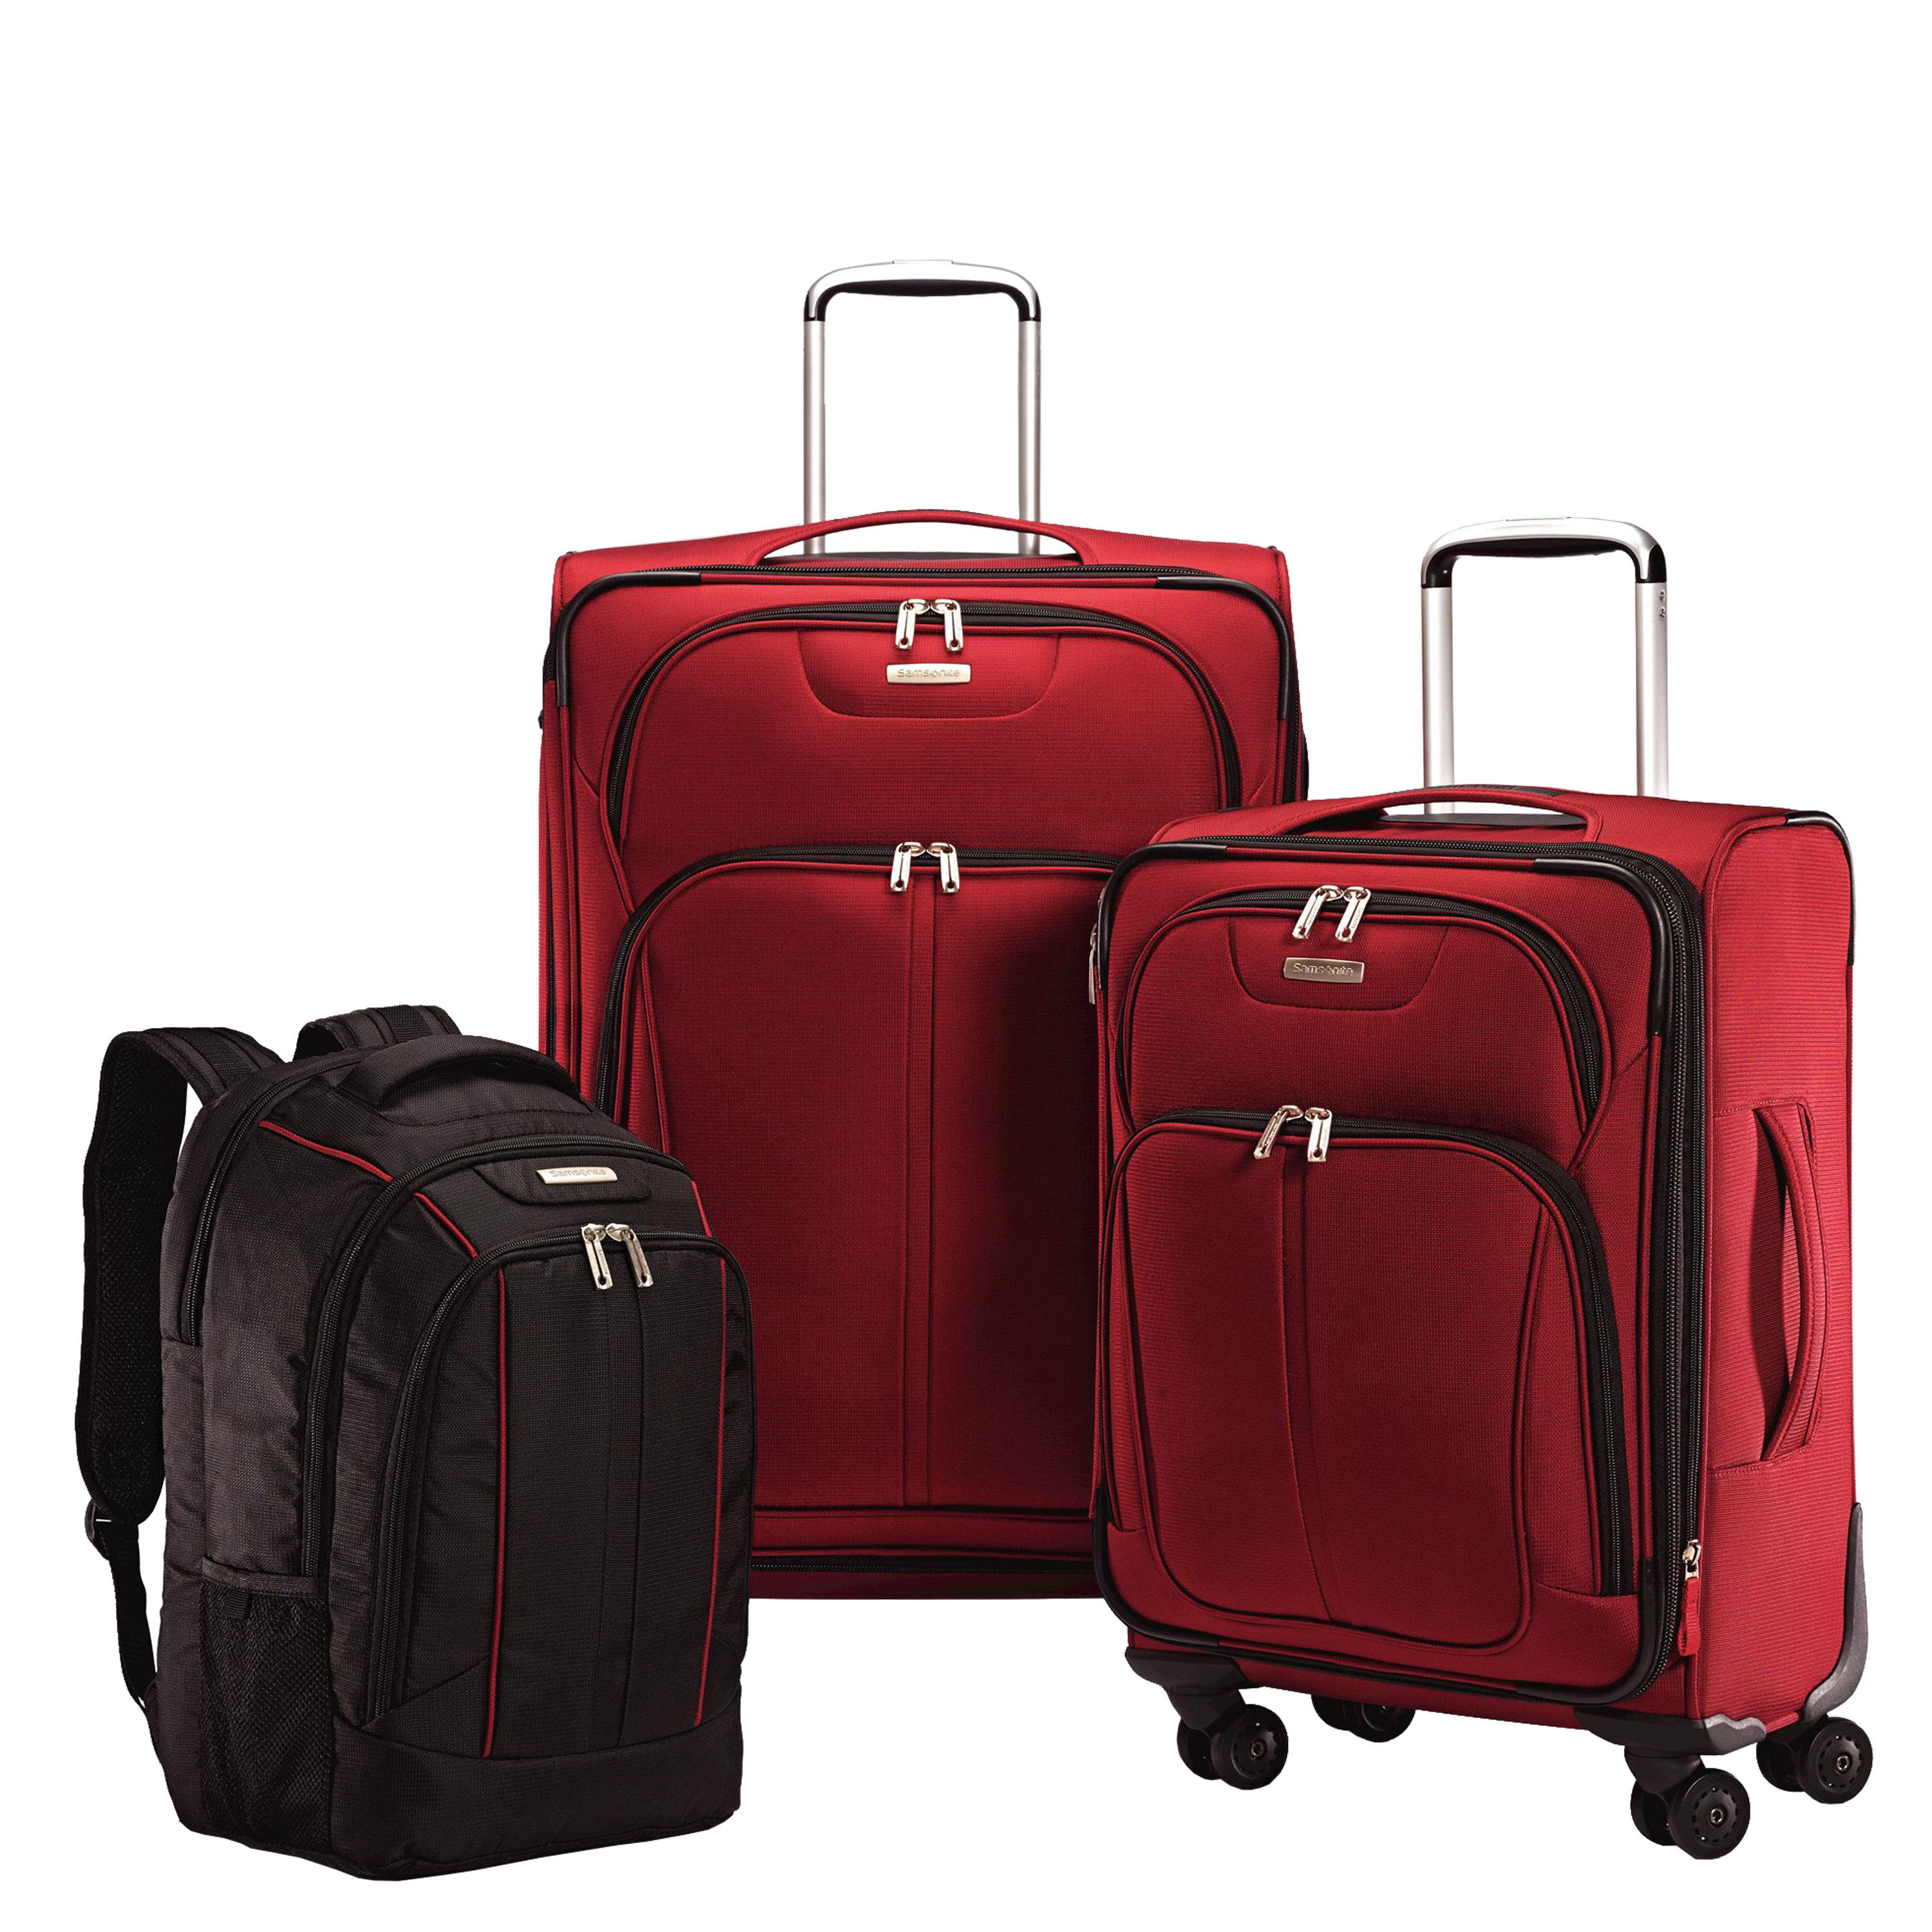 Samsonite Versa-Lite 360 3 Piece Nested Set Luggage